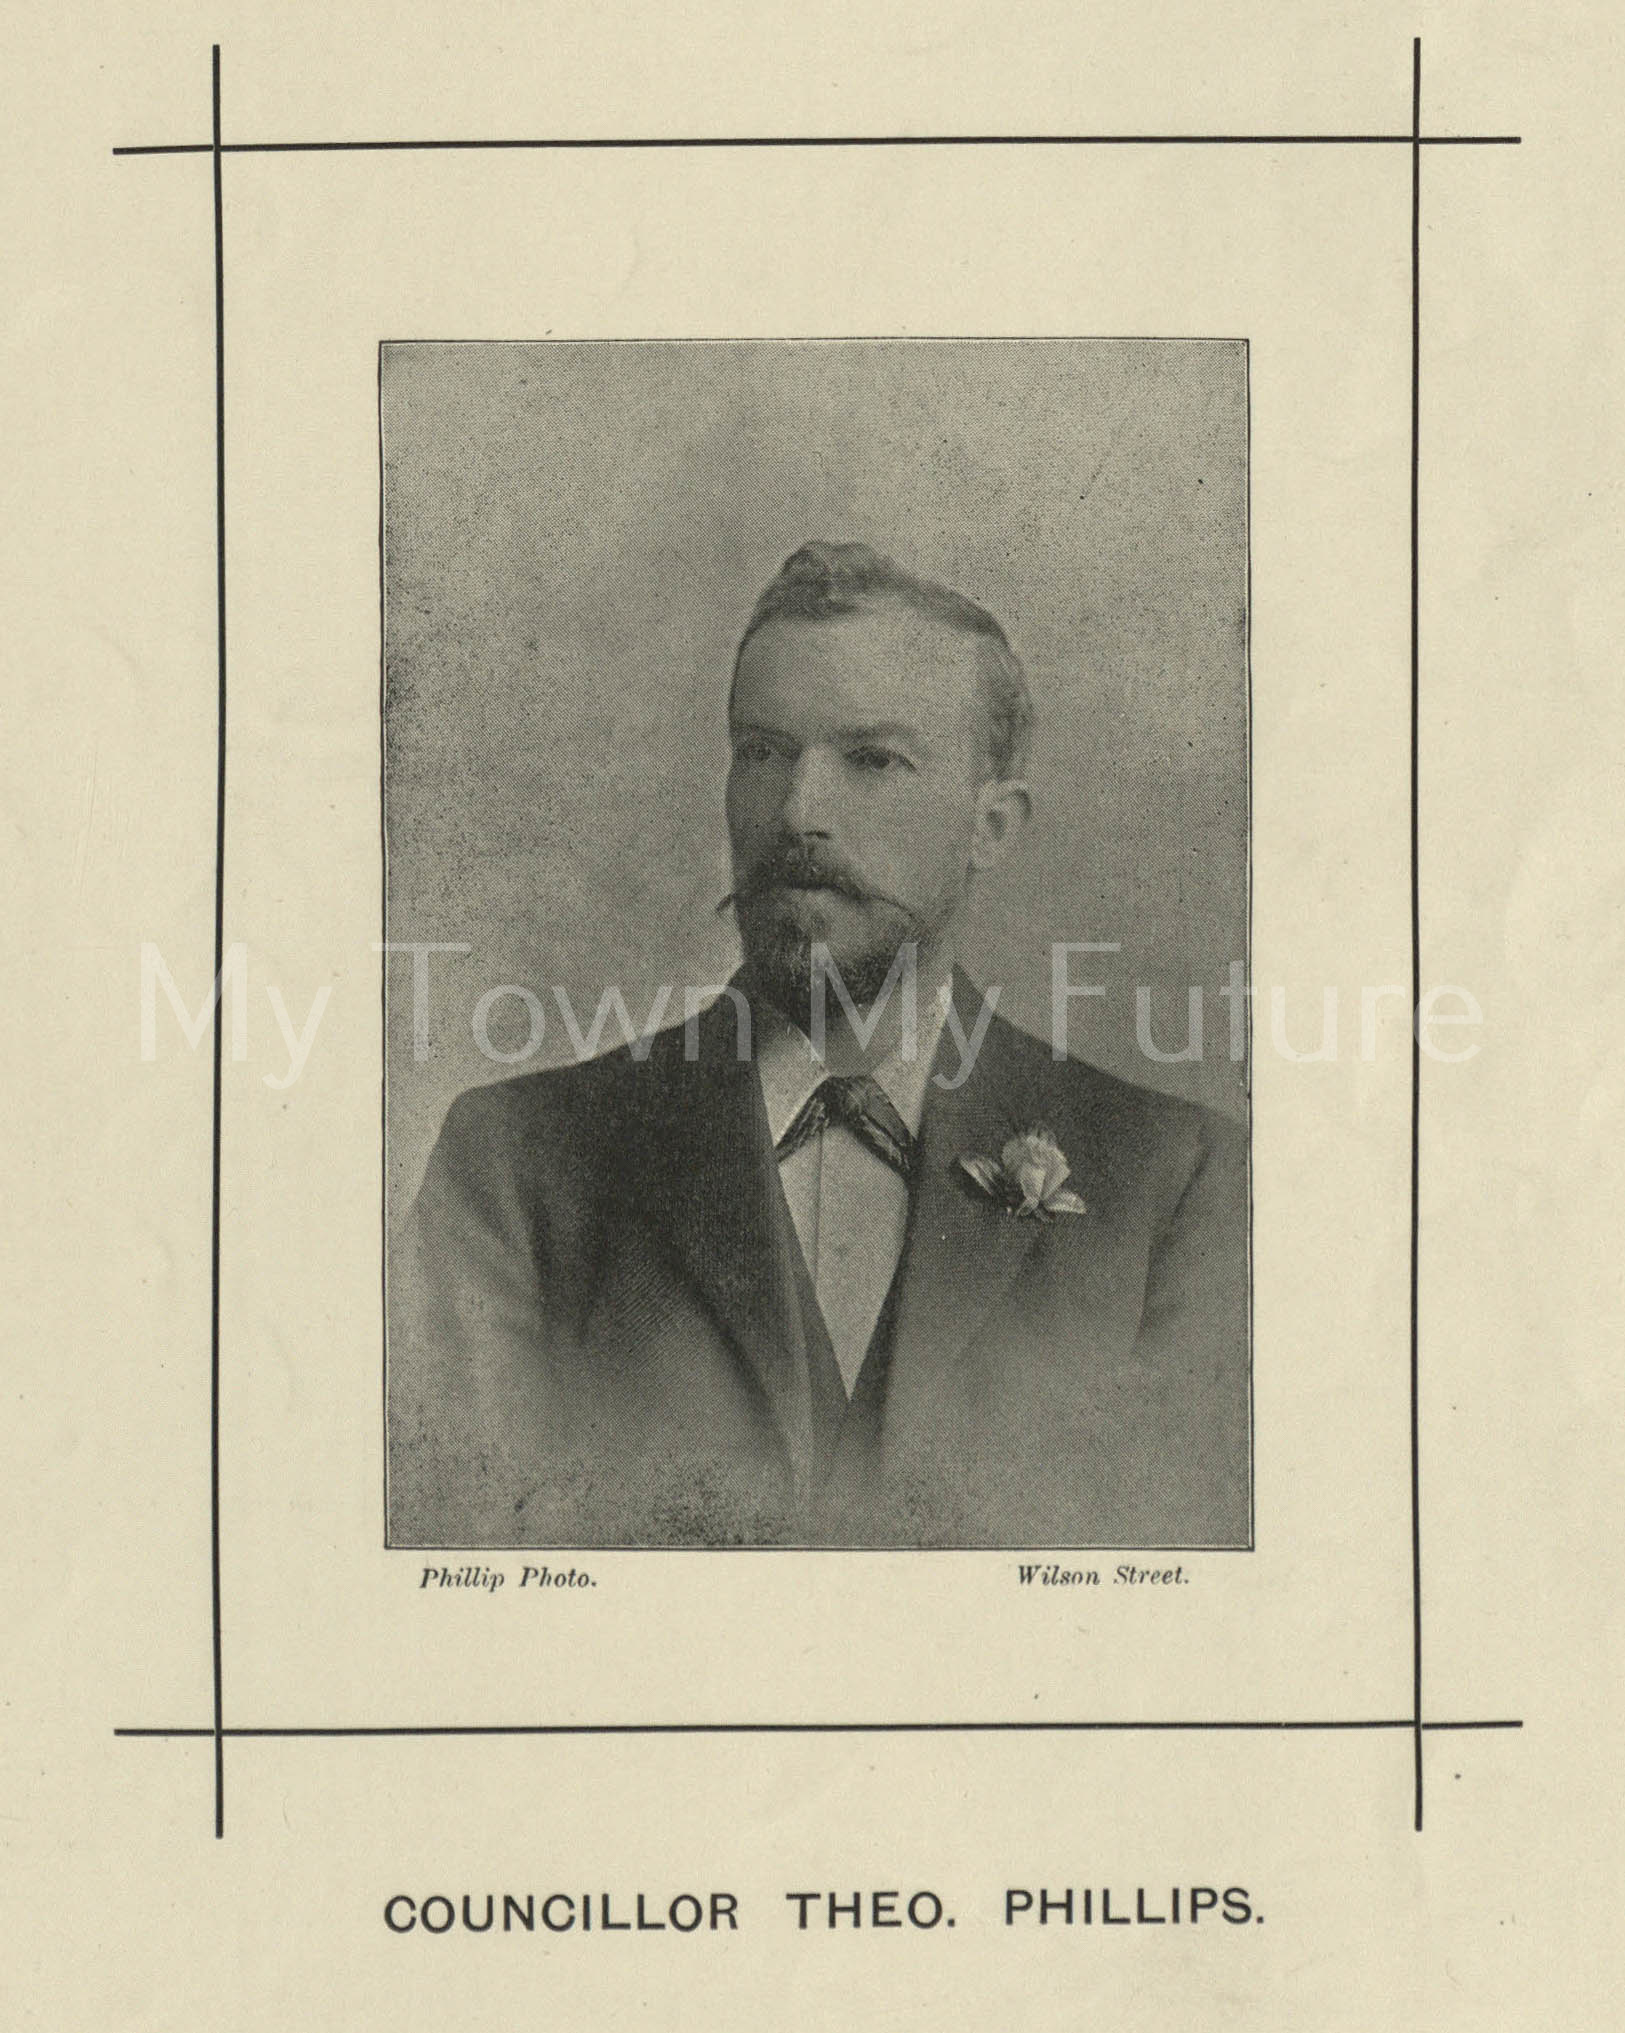 Councillor Theo Phillips